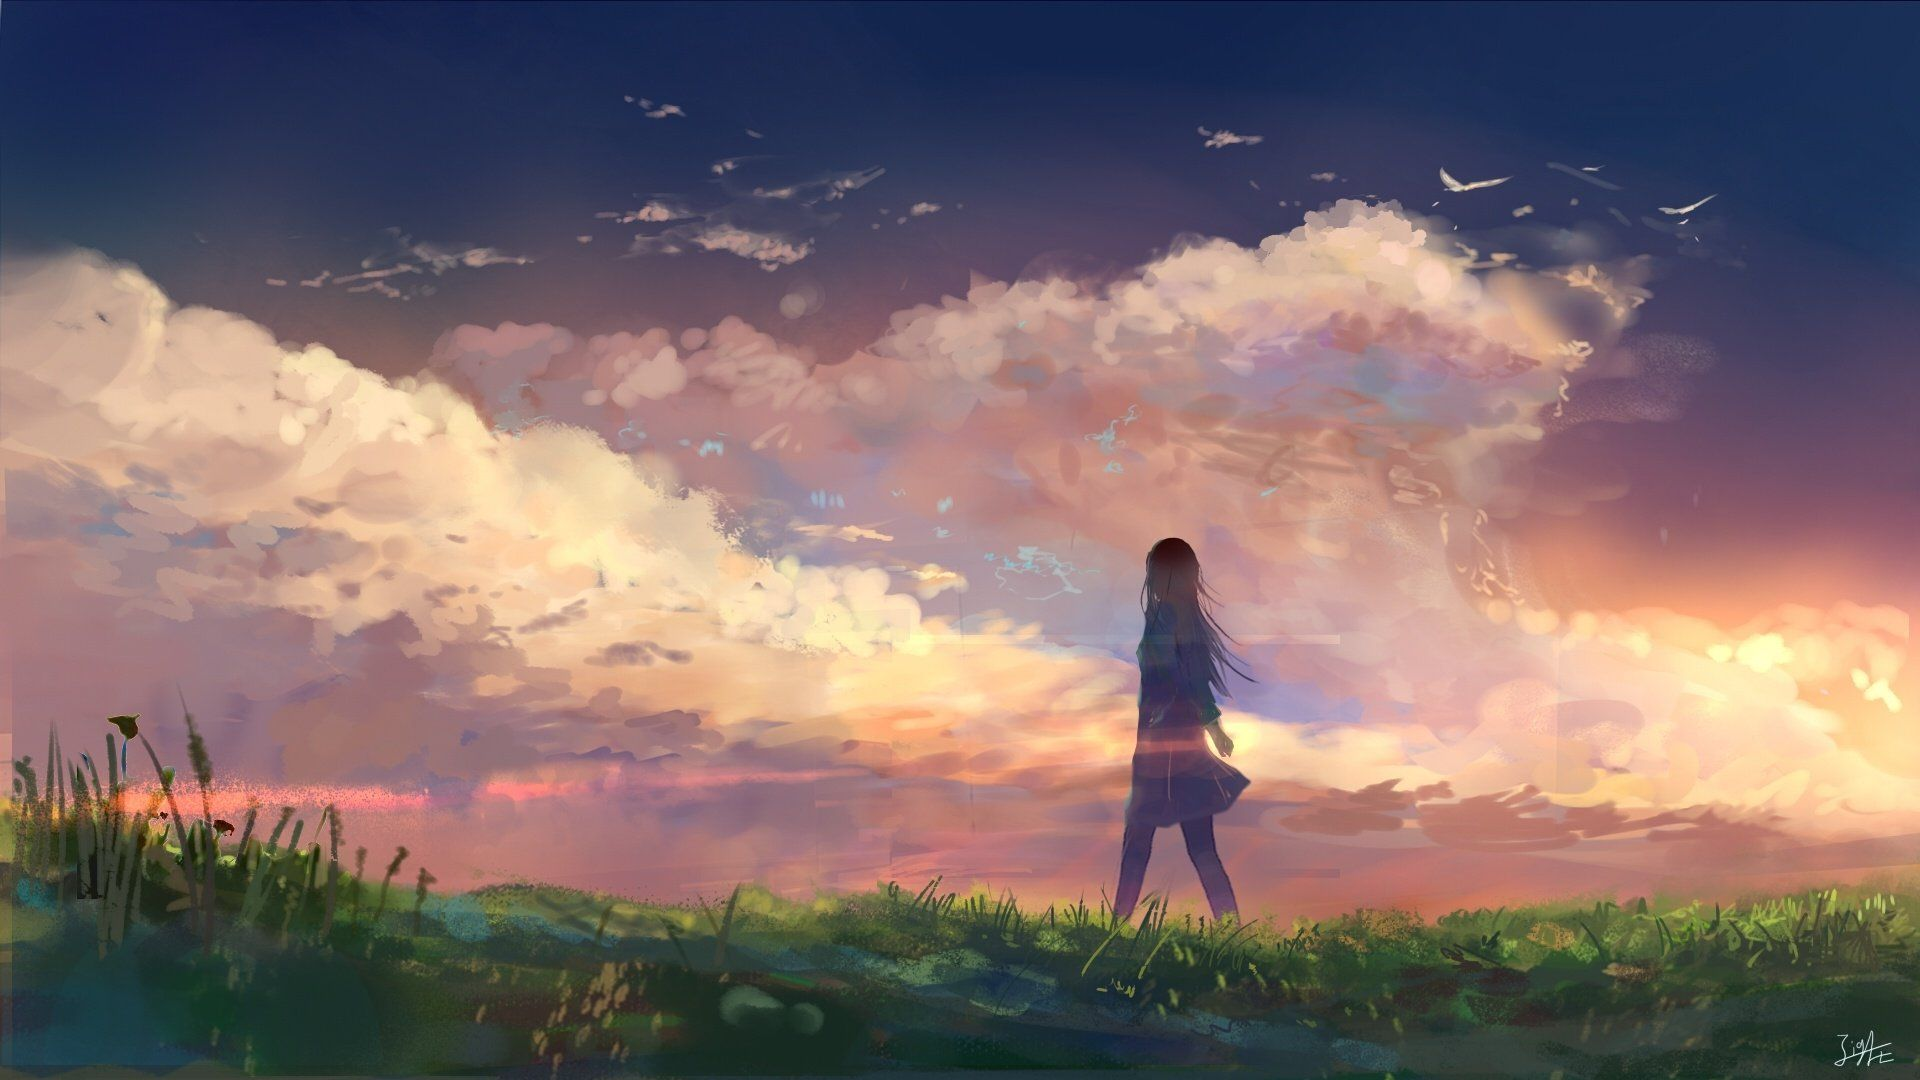 Cool Anime Sunset Wallpapers - Wallpaper Cave